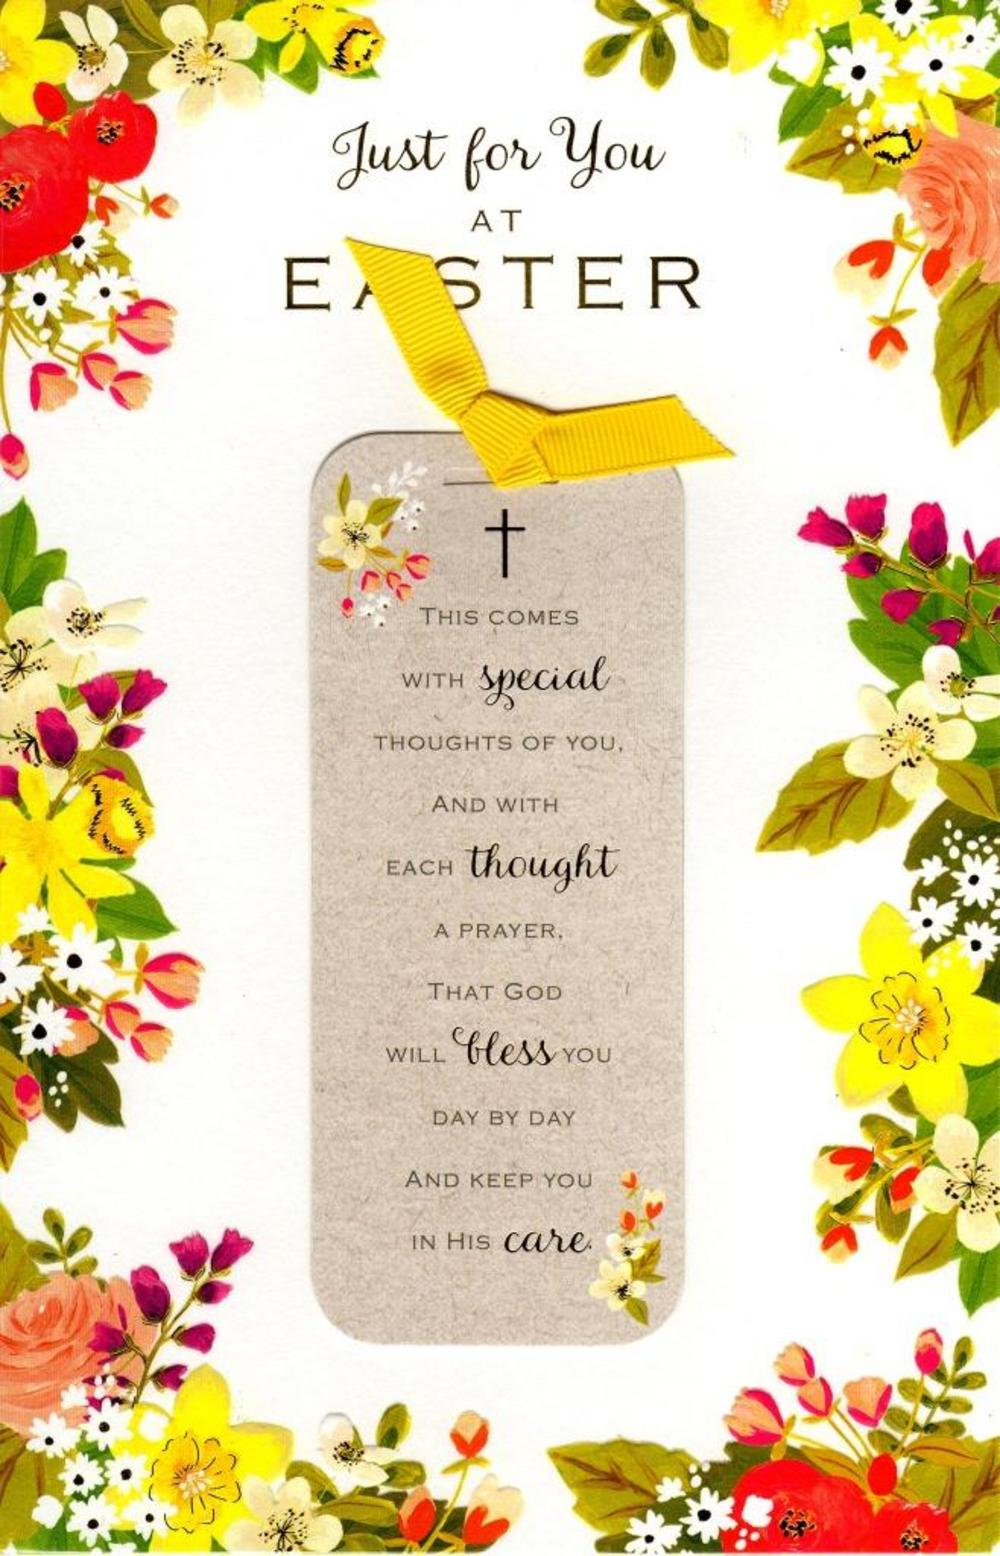 Just For You At Easter Religious Greeting Card